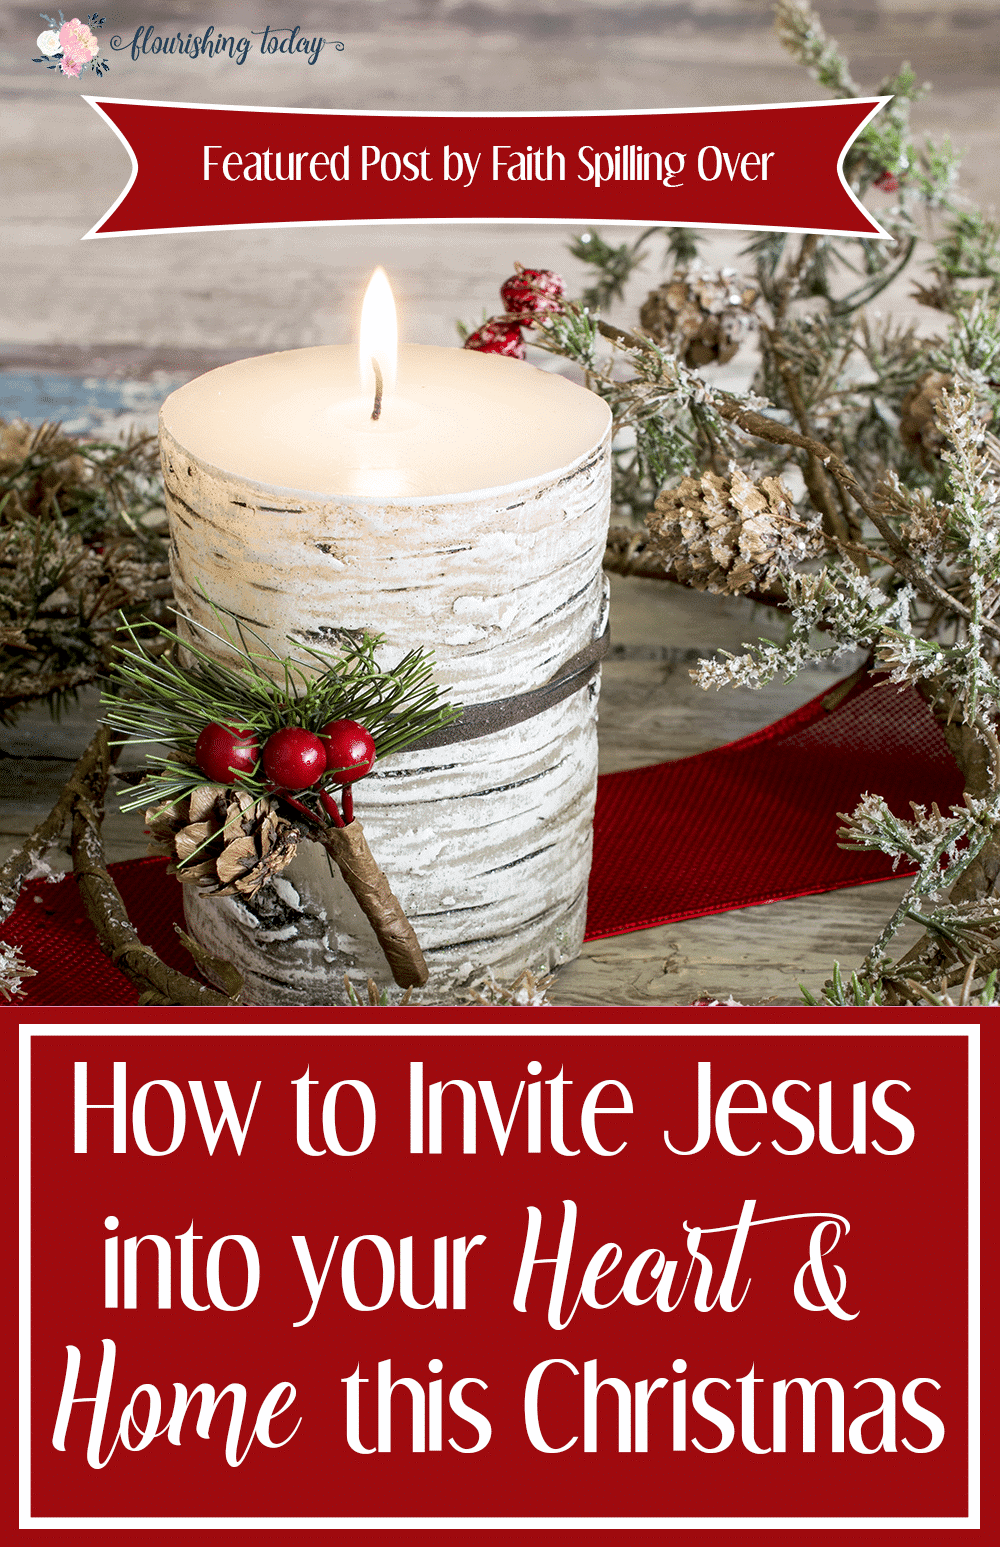 How do you plan to keep Jesus in Christmas this year? Here are a few ways to invite Him into your heart and home and keep Him the centerpiece of the holiday